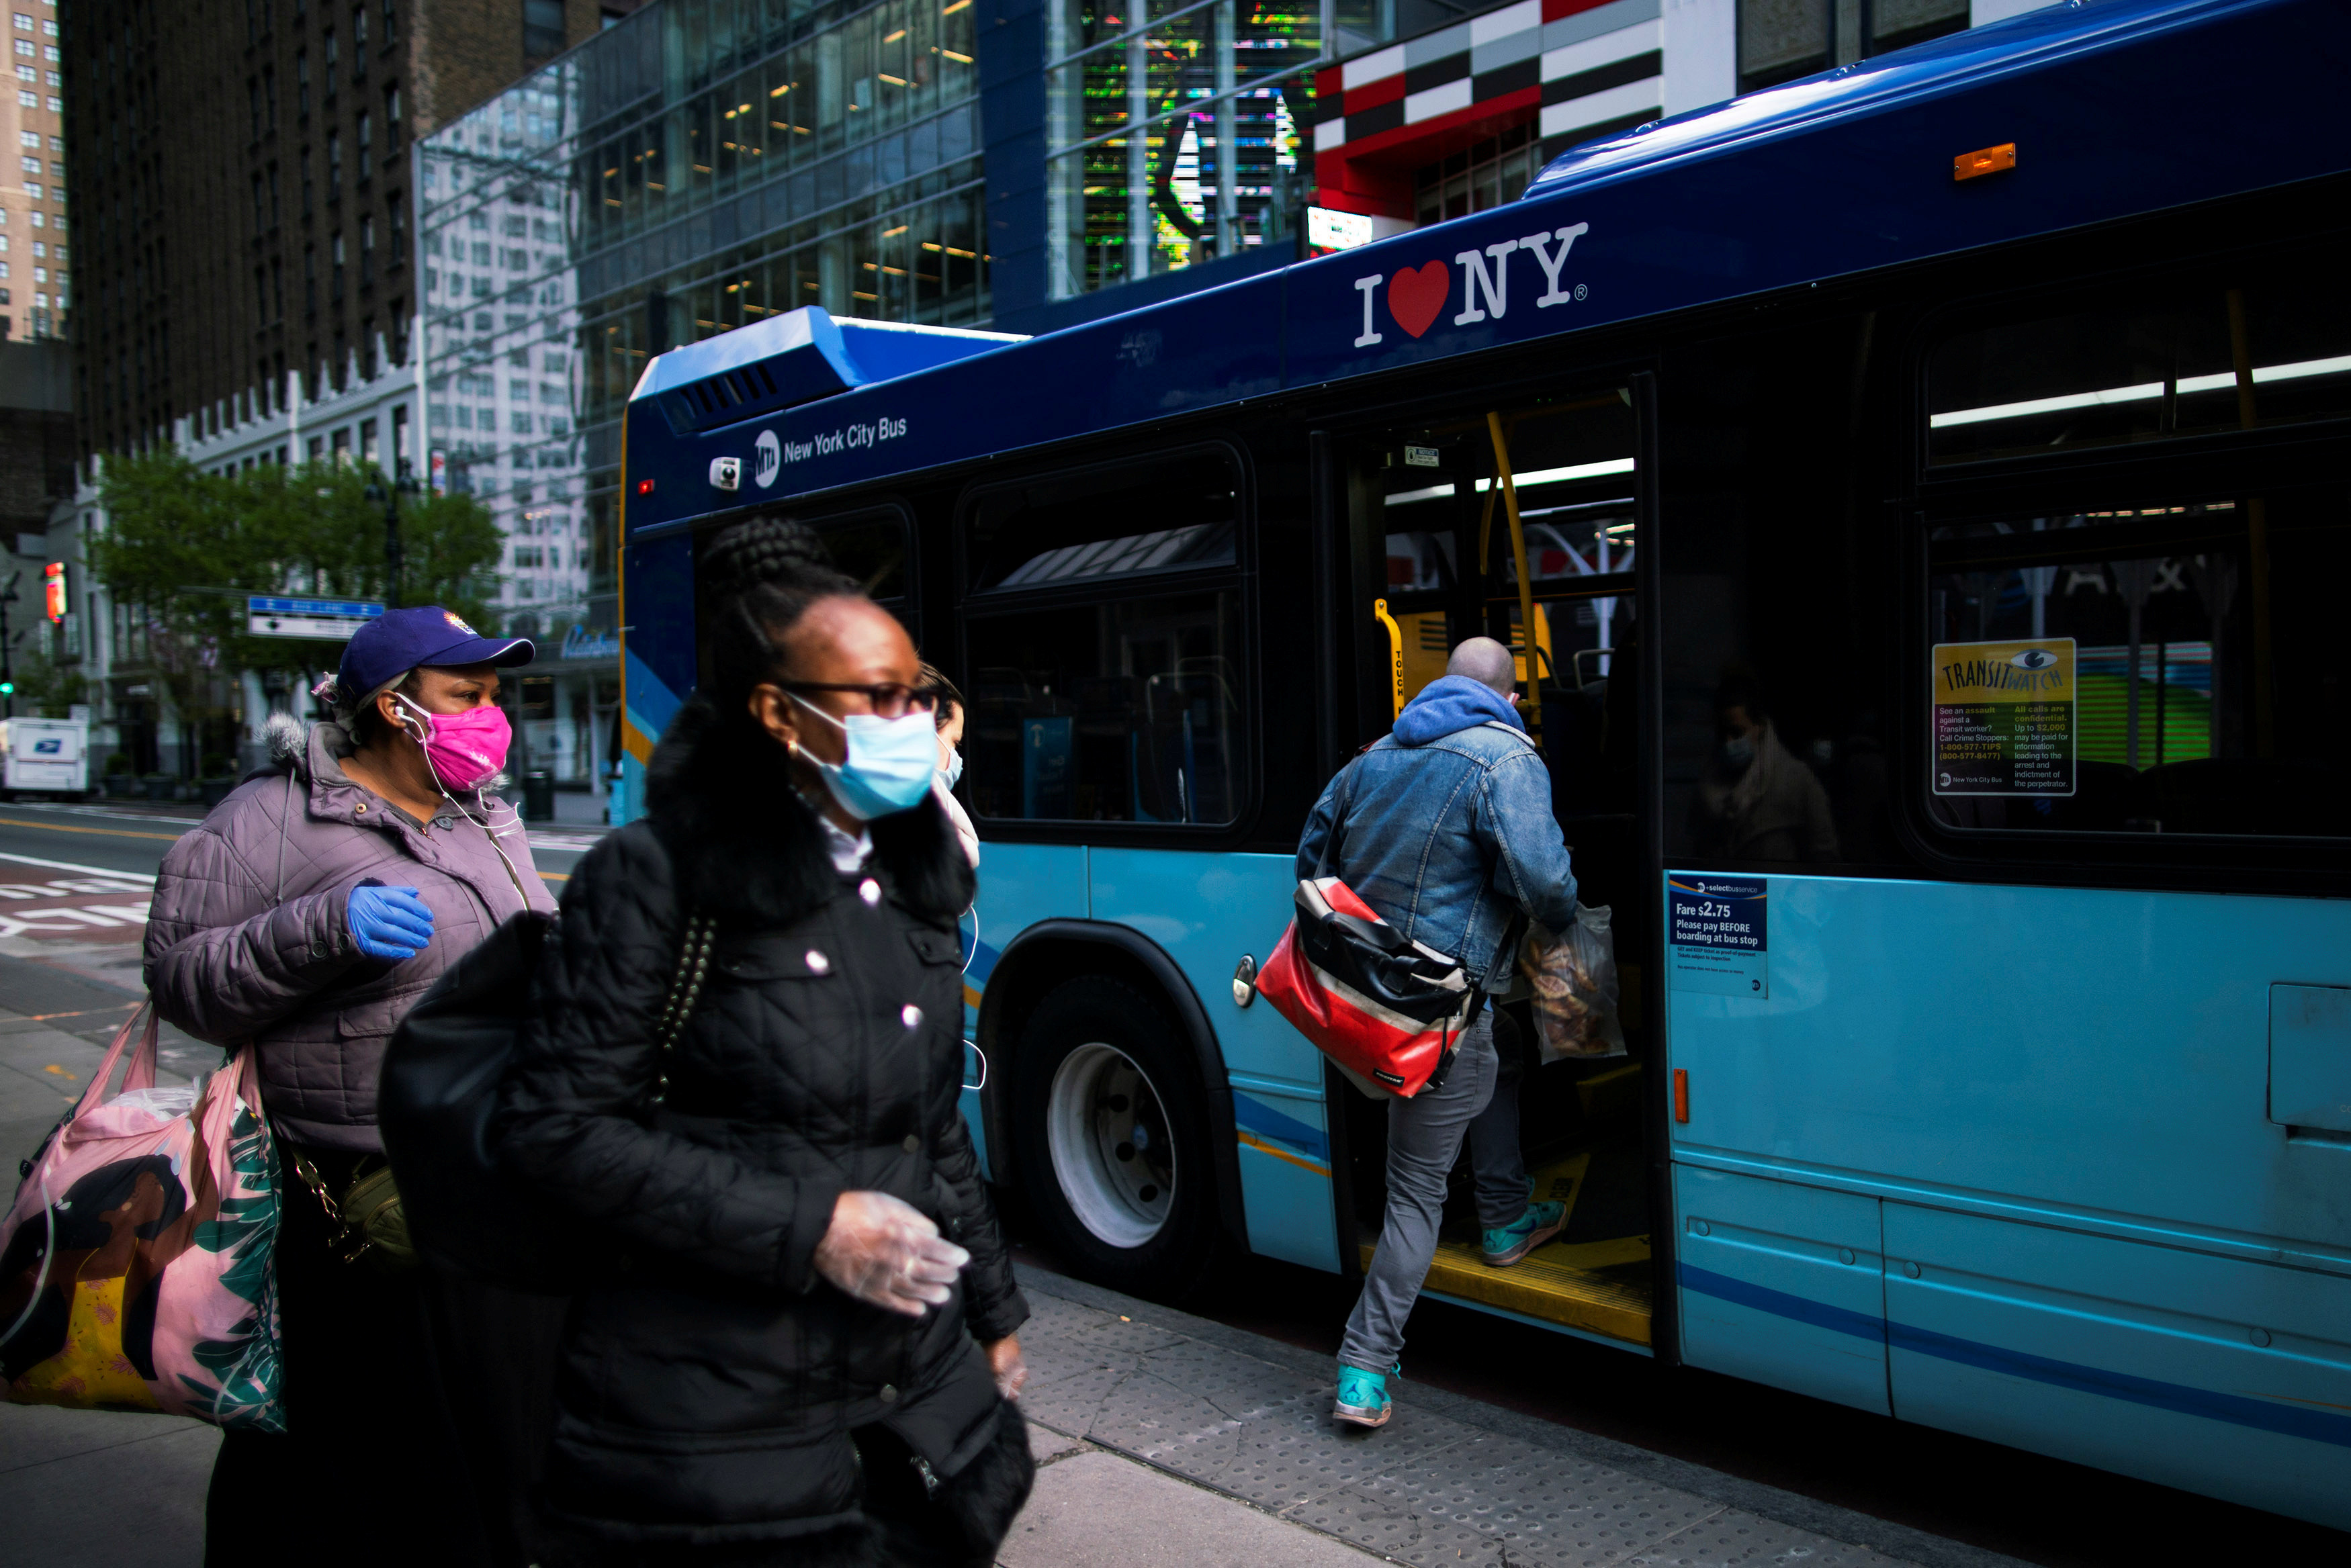 People go into the New York City The Metropolitan Transportation Authority (MTA) bus system by the back door, during the outbreak of the coronavirus disease (COVID-19) in New York City, New York, U.S., April 22, 2020. REUTERS/Eduardo Munoz - RC2R9G984CTO